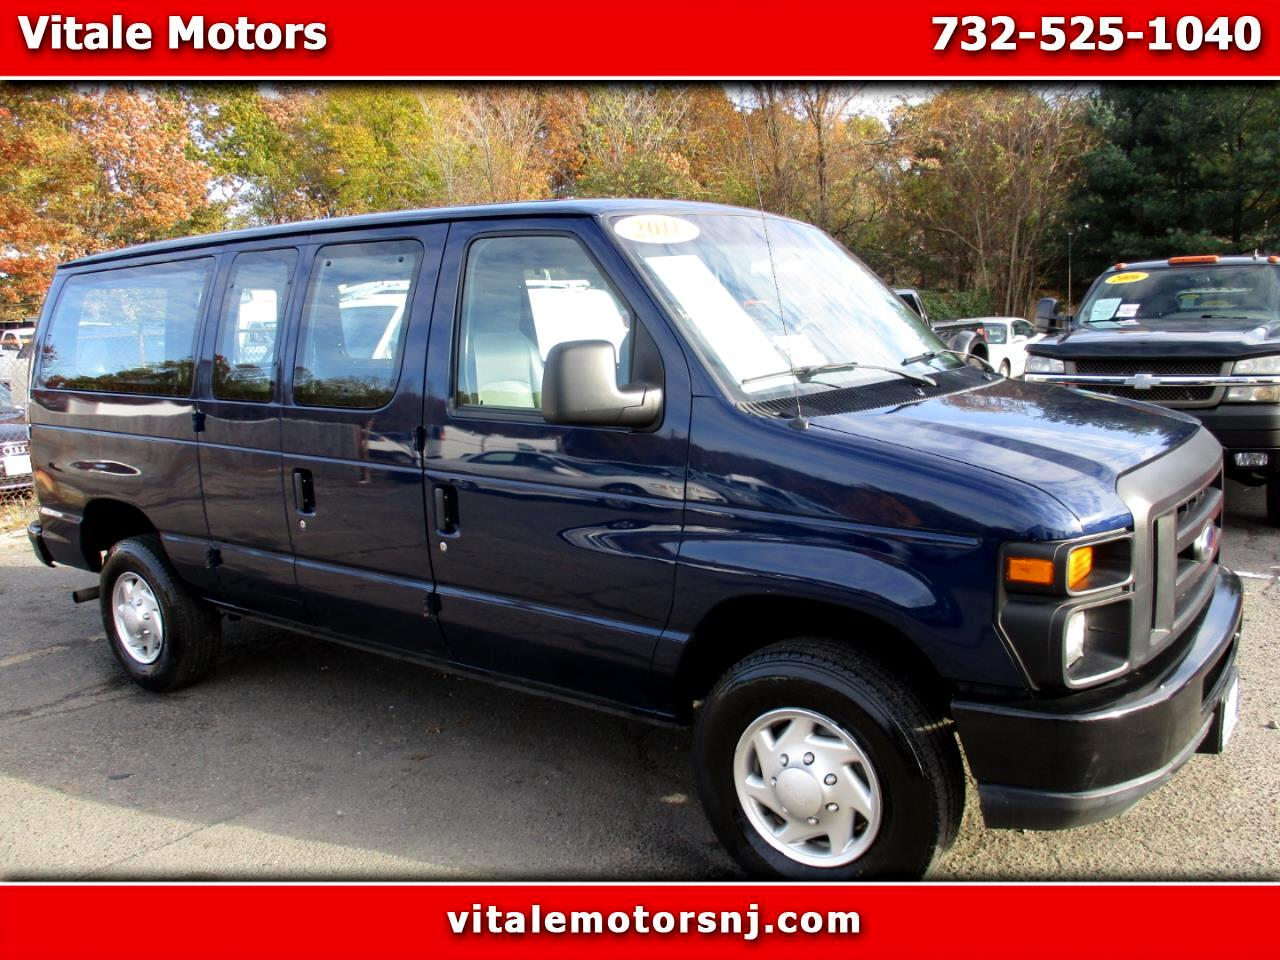 2011 Ford Econoline E-250 CARGO VAN W/ WINDOWS